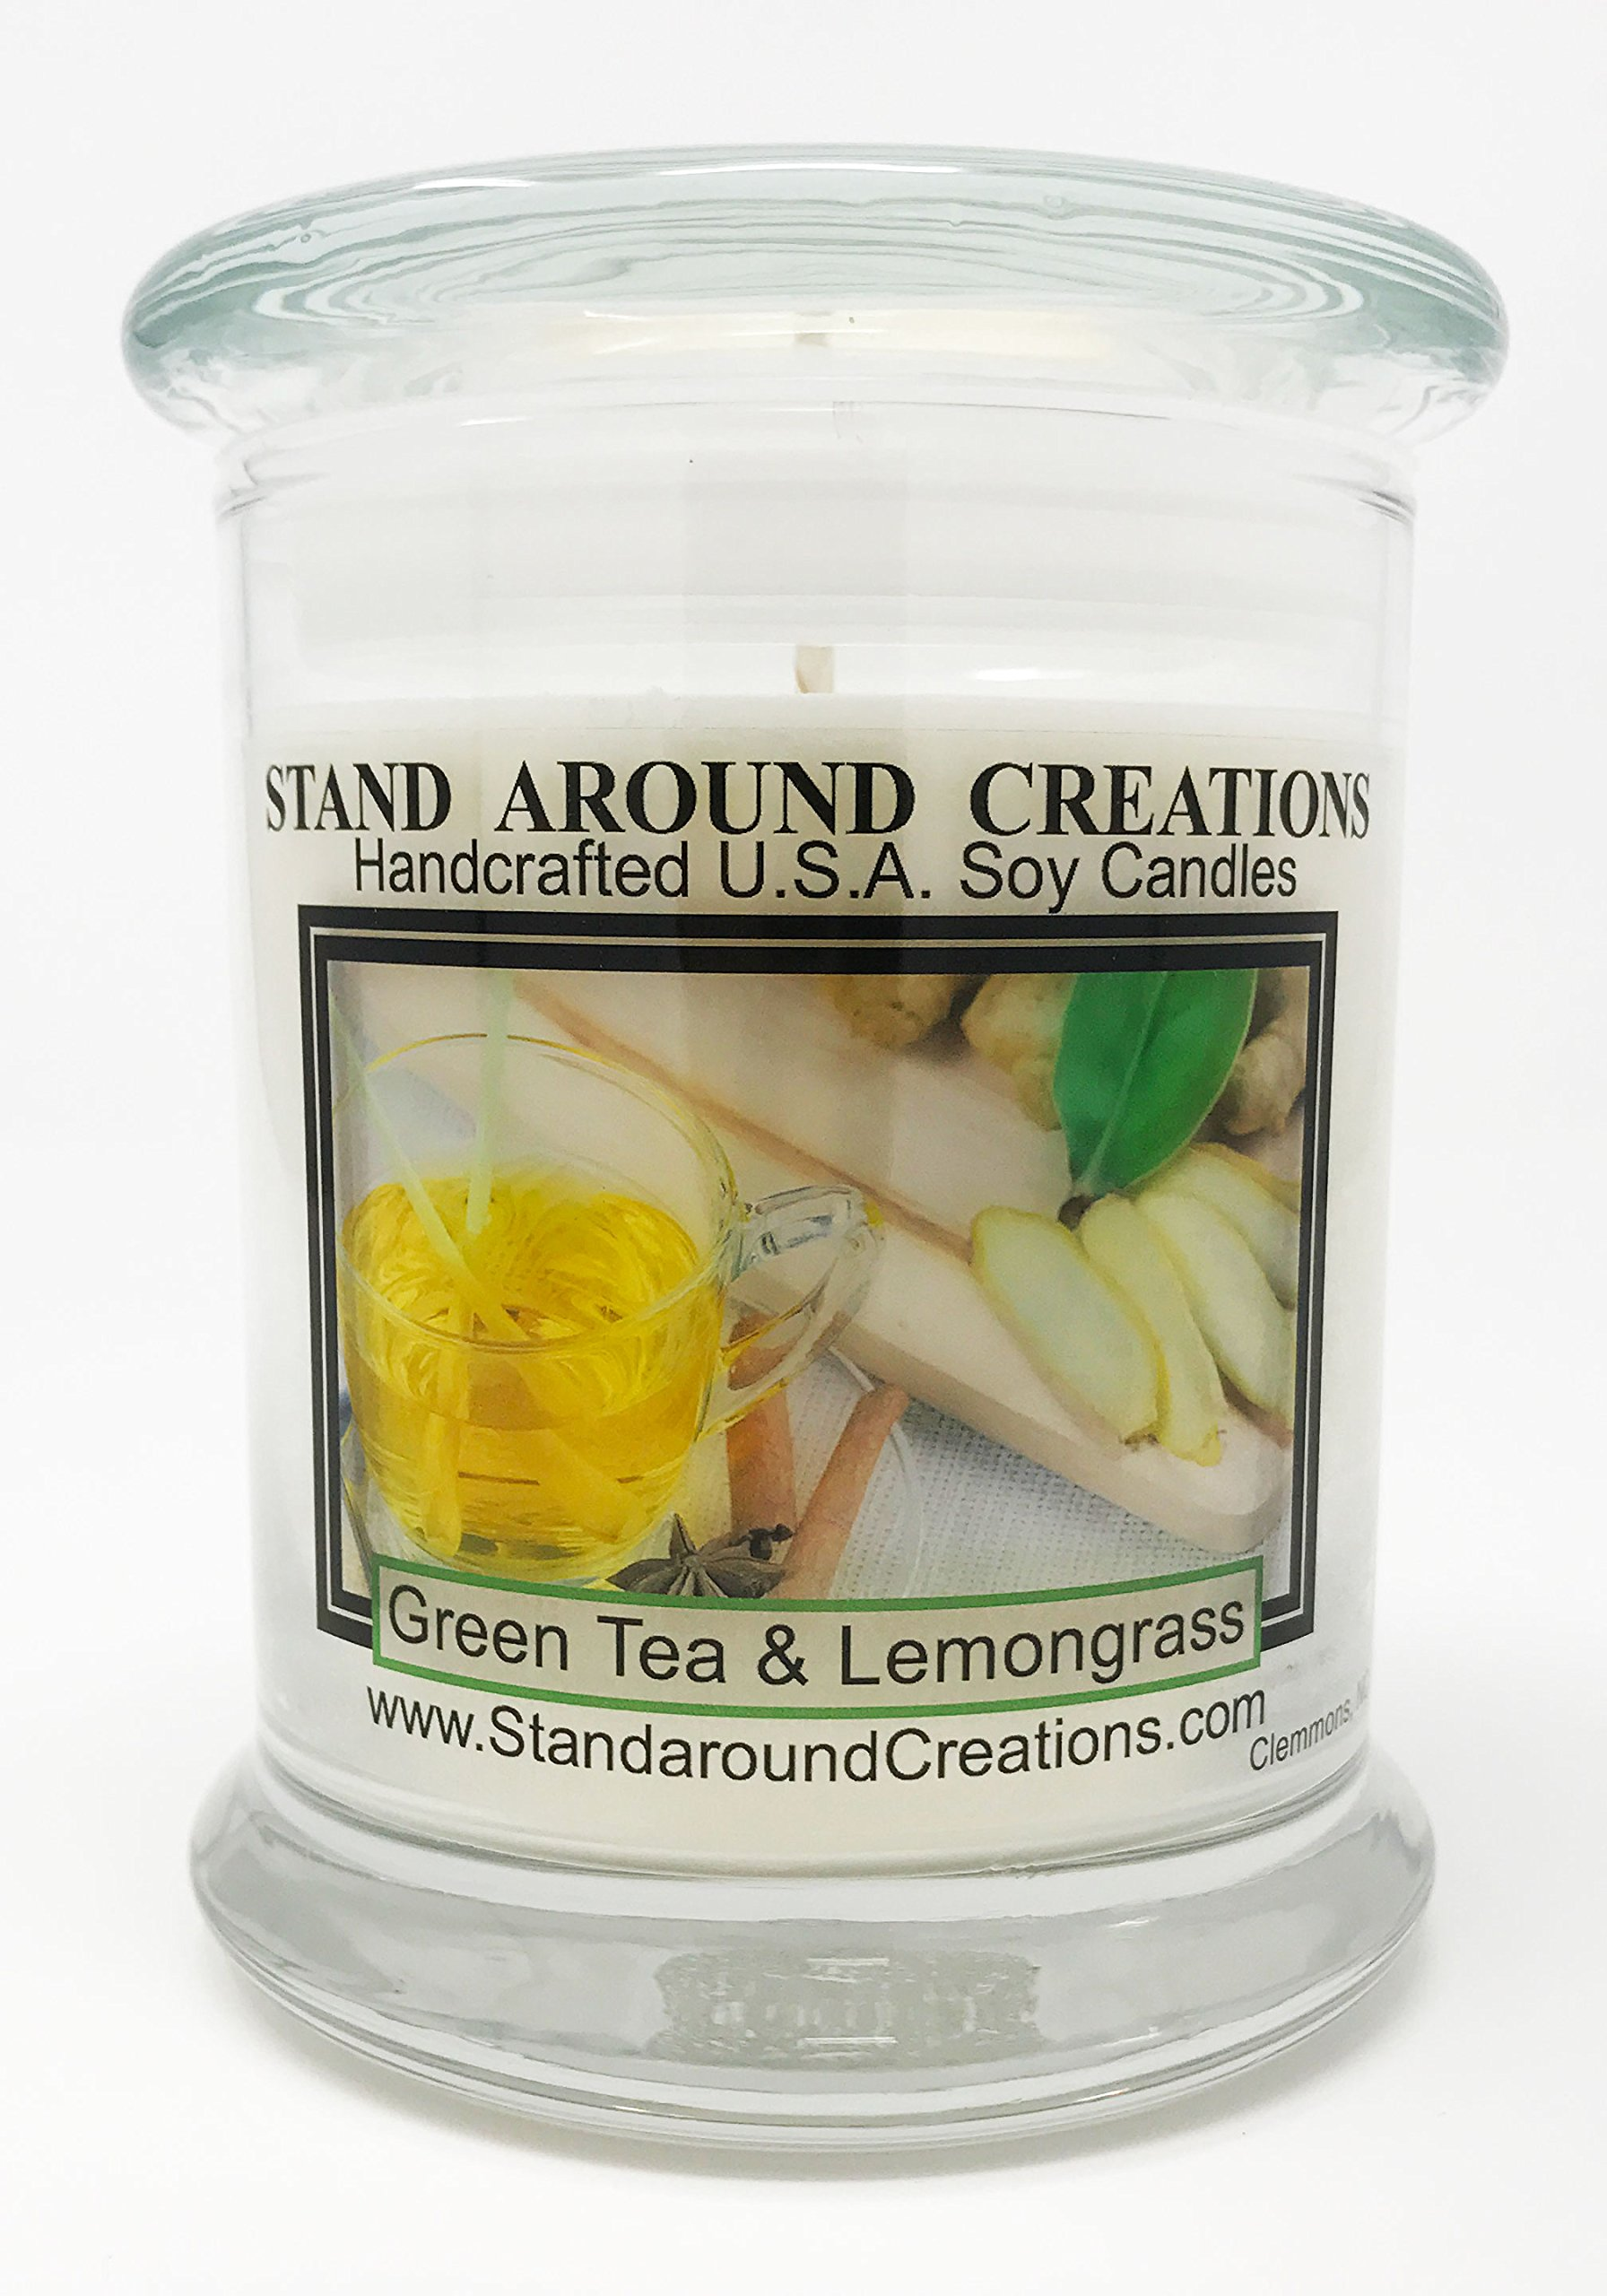 Premium 100% Soy Candle - 12 oz. Status Jar -Green Tea and Lemon Grass: Bright and natural citrus begins w/notes of bergamot tea and plum w/jasmine and orange flowers w/a clean citrus musk.